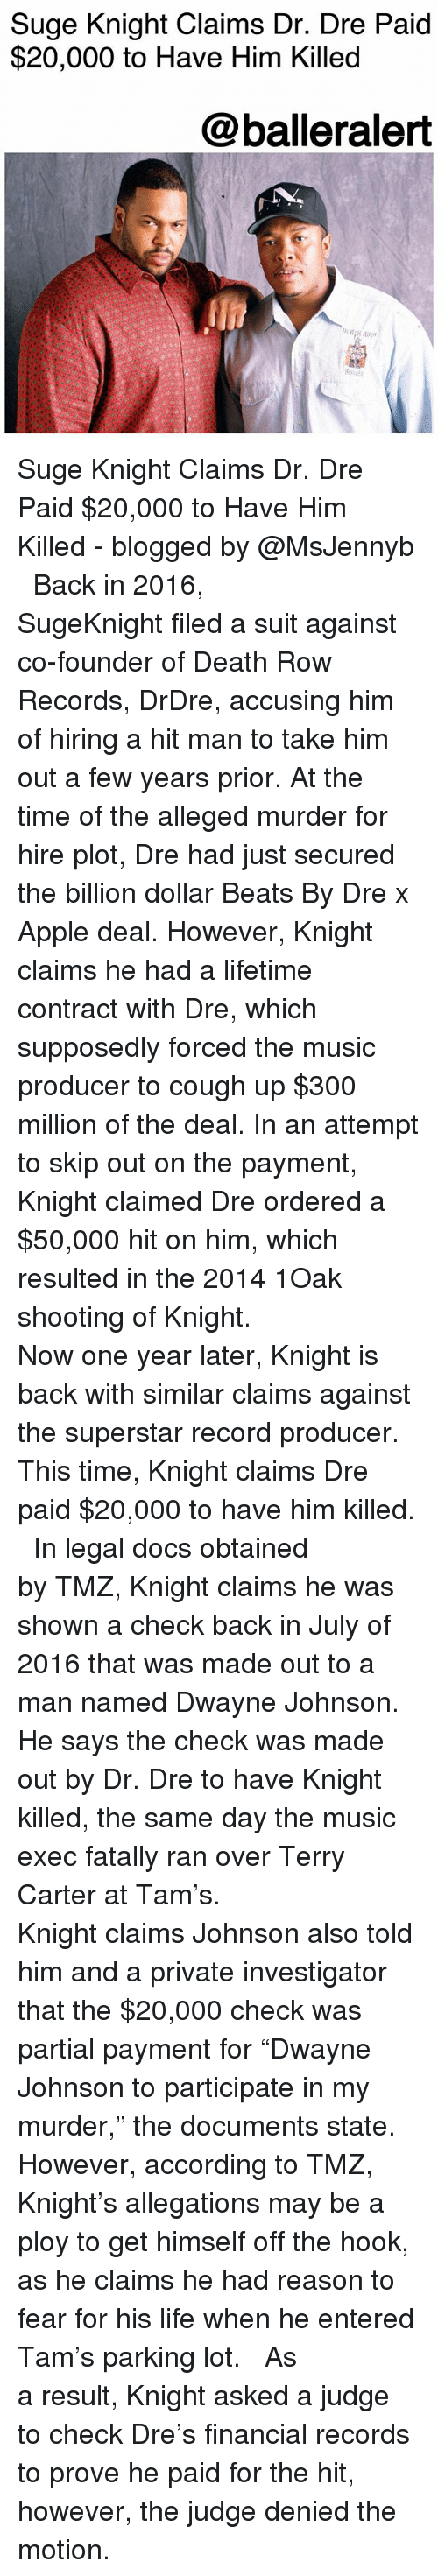 """ploy: Suge Knight Claims Dr. Dre Paid  $20,000 to Have Him Killed  @balleralert Suge Knight Claims Dr. Dre Paid $20,000 to Have Him Killed - blogged by @MsJennyb ⠀⠀⠀⠀⠀⠀⠀ ⠀⠀⠀⠀⠀⠀⠀ Back in 2016, SugeKnight filed a suit against co-founder of Death Row Records, DrDre, accusing him of hiring a hit man to take him out a few years prior. At the time of the alleged murder for hire plot, Dre had just secured the billion dollar Beats By Dre x Apple deal. However, Knight claims he had a lifetime contract with Dre, which supposedly forced the music producer to cough up $300 million of the deal. In an attempt to skip out on the payment, Knight claimed Dre ordered a $50,000 hit on him, which resulted in the 2014 1Oak shooting of Knight. ⠀⠀⠀⠀⠀⠀⠀ ⠀⠀⠀⠀⠀⠀⠀ Now one year later, Knight is back with similar claims against the superstar record producer. This time, Knight claims Dre paid $20,000 to have him killed. ⠀⠀⠀⠀⠀⠀⠀ ⠀⠀⠀⠀⠀⠀⠀ In legal docs obtained by TMZ, Knight claims he was shown a check back in July of 2016 that was made out to a man named Dwayne Johnson. He says the check was made out by Dr. Dre to have Knight killed, the same day the music exec fatally ran over Terry Carter at Tam's. ⠀⠀⠀⠀⠀⠀⠀ ⠀⠀⠀⠀⠀⠀⠀ Knight claims Johnson also told him and a private investigator that the $20,000 check was partial payment for """"Dwayne Johnson to participate in my murder,"""" the documents state. However, according to TMZ, Knight's allegations may be a ploy to get himself off the hook, as he claims he had reason to fear for his life when he entered Tam's parking lot. ⠀⠀⠀⠀⠀⠀⠀ ⠀⠀⠀⠀⠀⠀⠀ As a result, Knight asked a judge to check Dre's financial records to prove he paid for the hit, however, the judge denied the motion."""